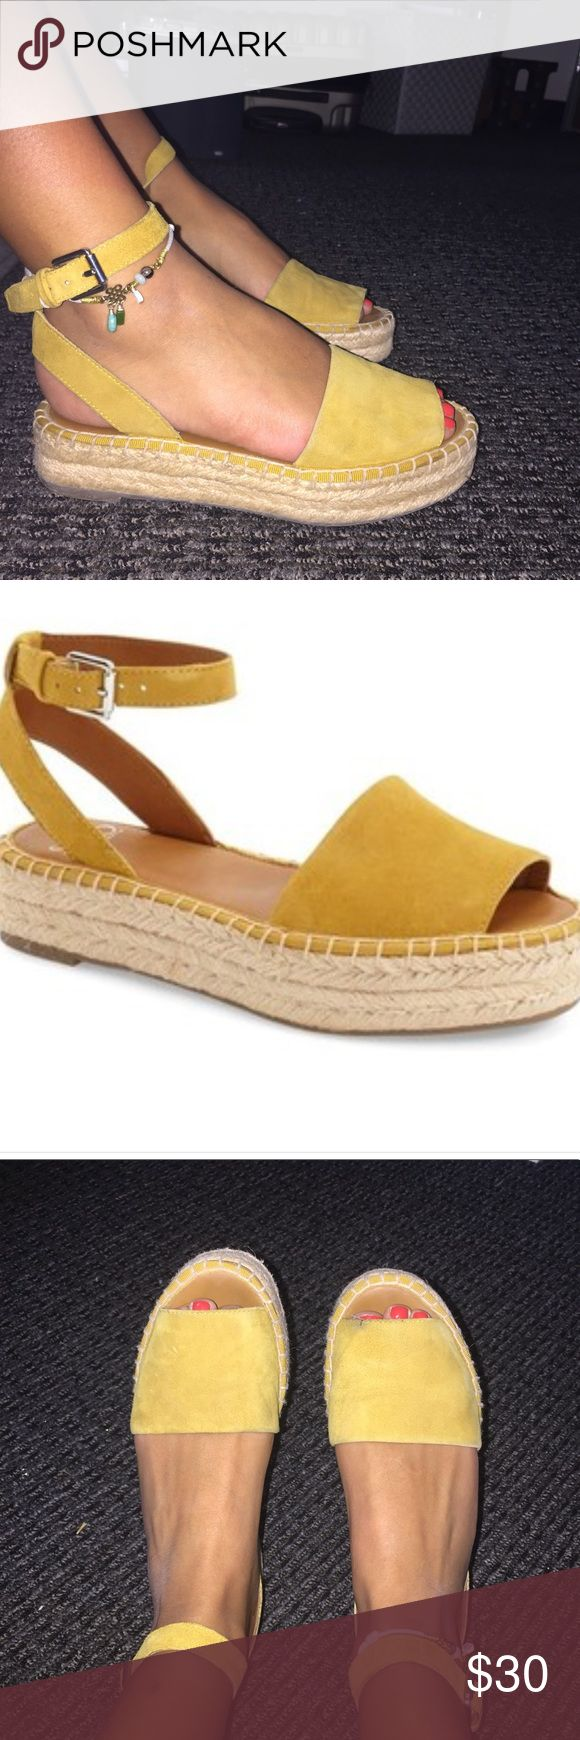 Mustard Yellow Franco Sarto Espadrille Sandals I've worn these quite a few times. Worn and pre- loved as shown in the photos. Slight cracking on right toe. Still super cute! Franco Sarto Shoes Espadrilles